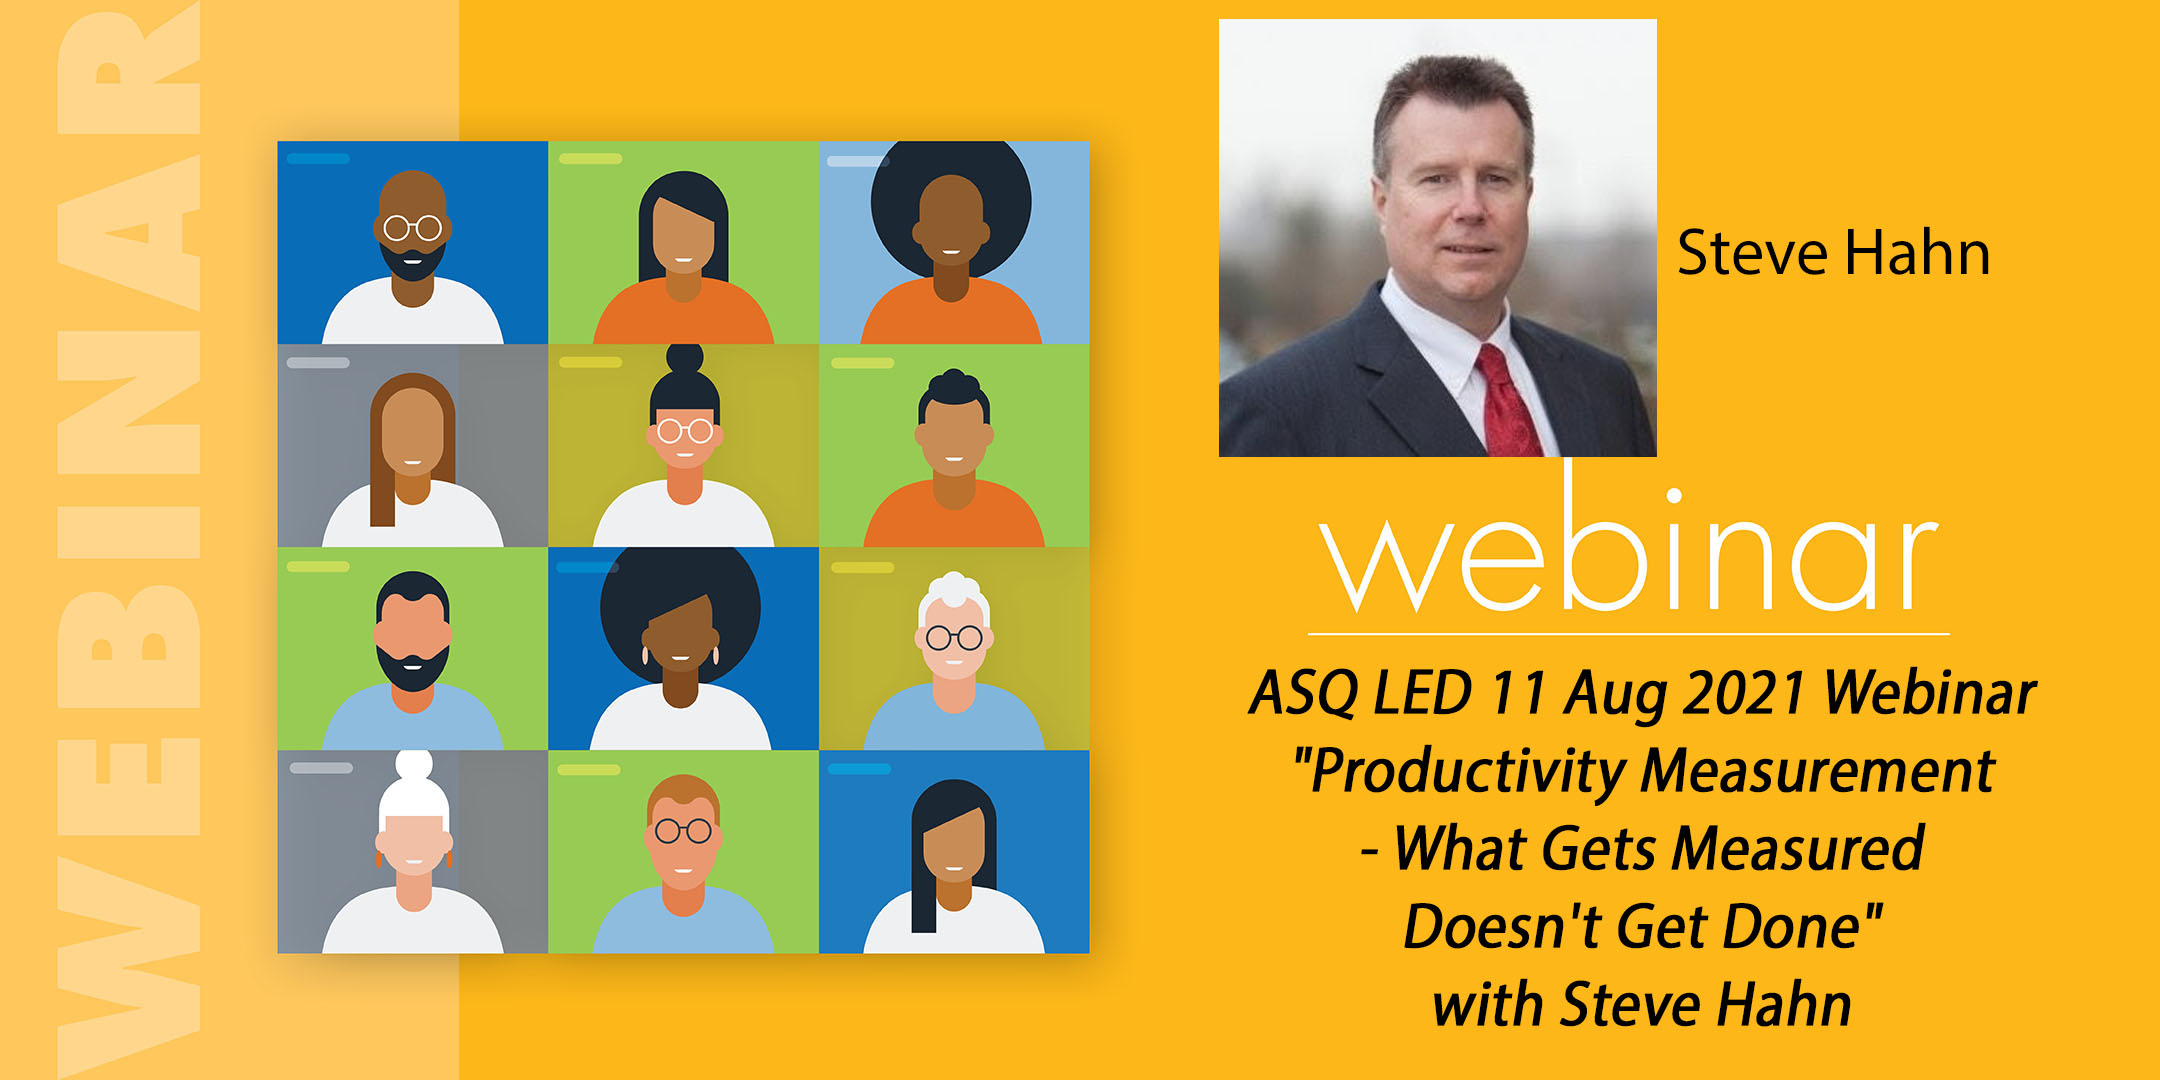 """ASQ LED 11 Aug 2021 Webinar - """"Productivity Measurement - What Gets Measured Doesn't Get Done"""" with Steve Hahn 3299"""